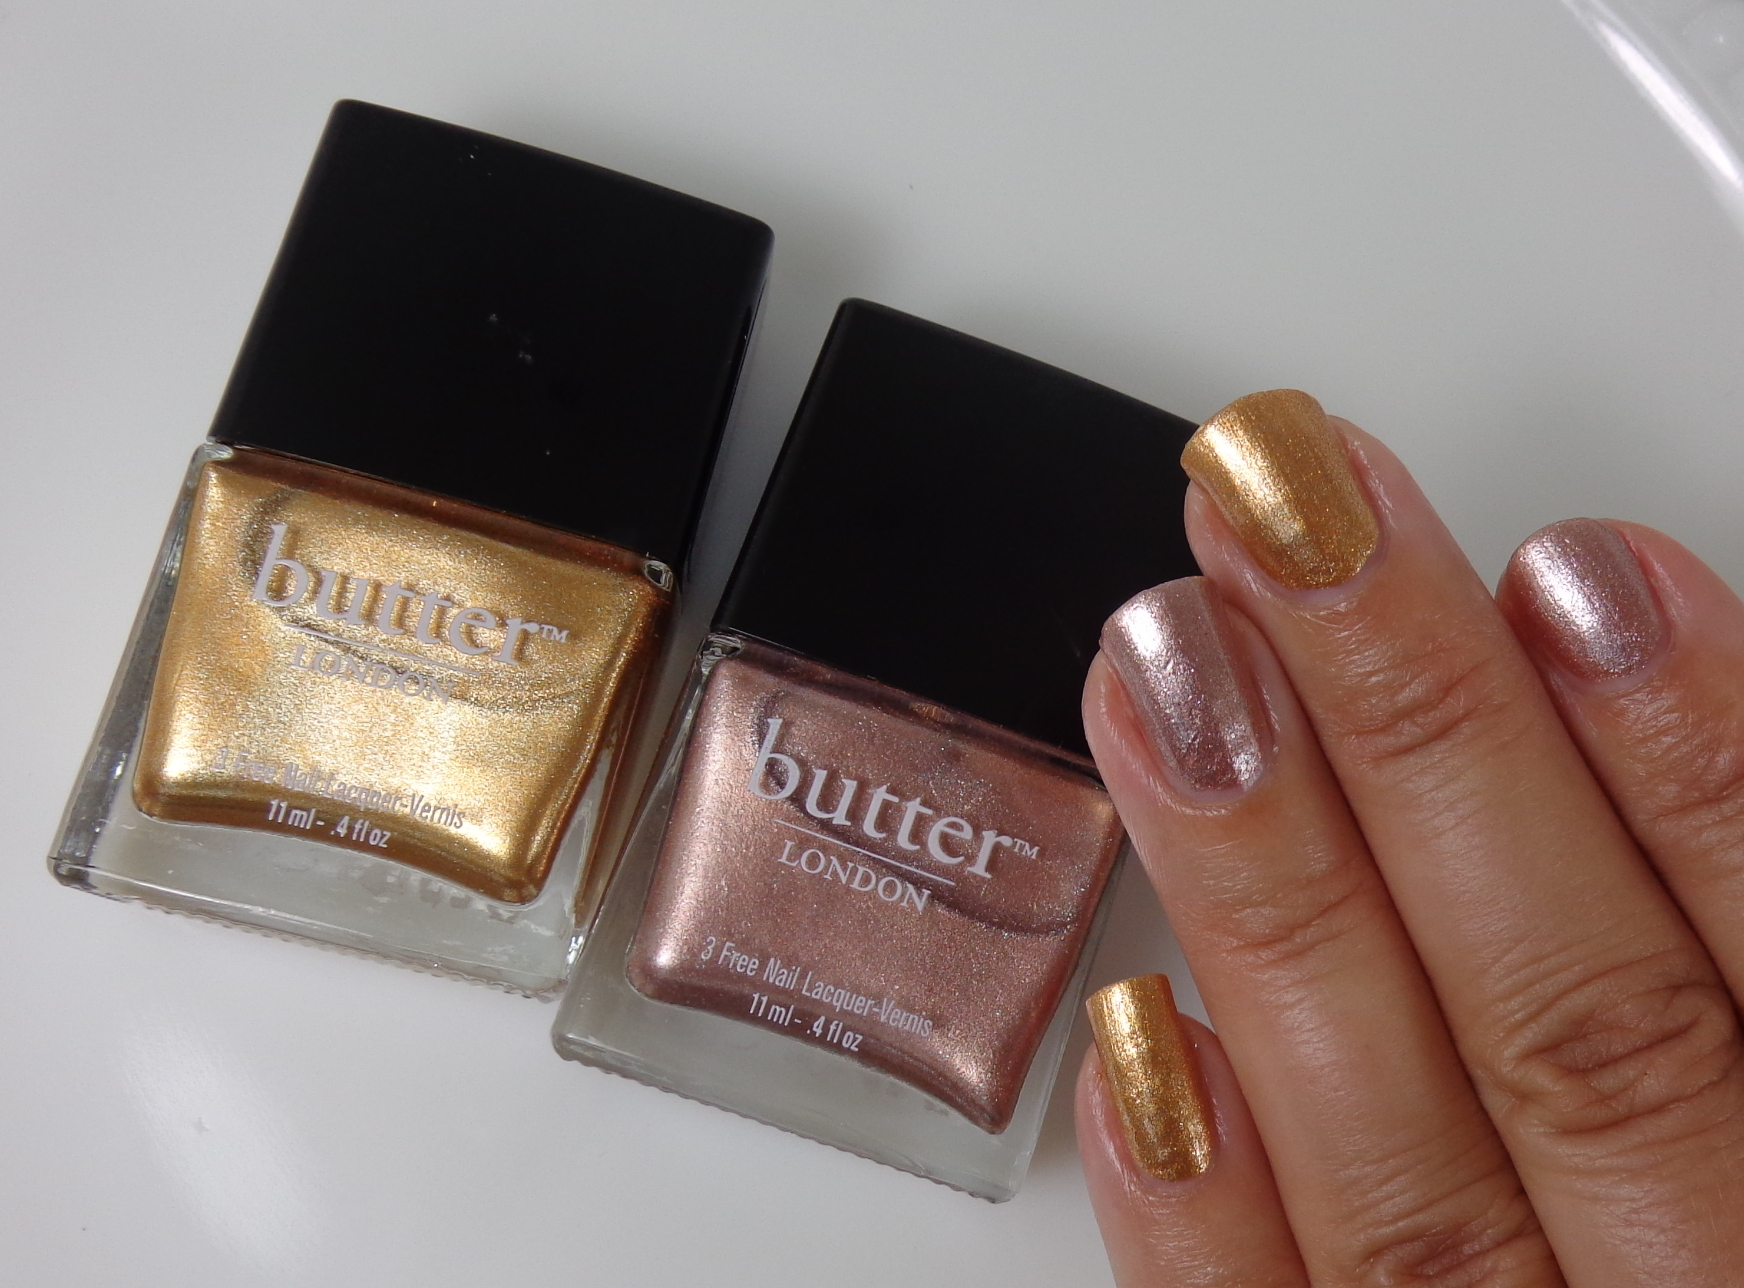 butter london marbs champers swatches